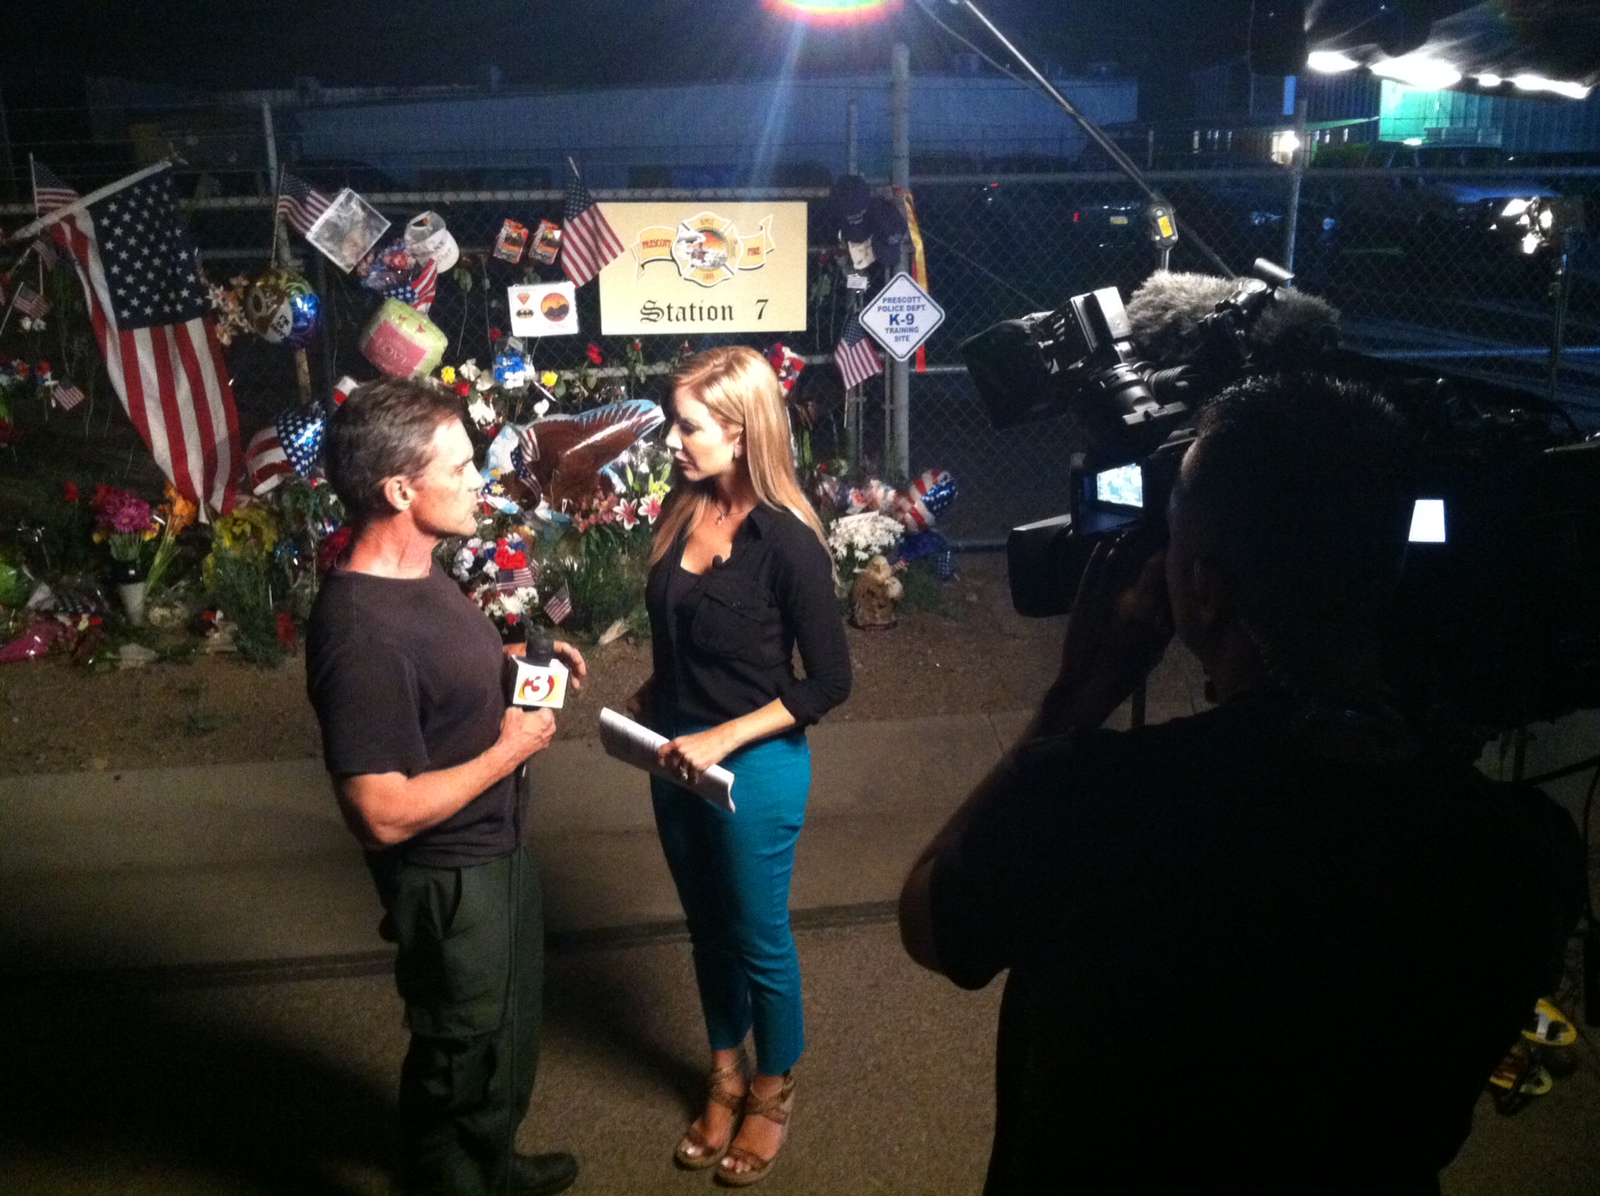 Carey Pena and Mike Watkiss cover the Granite Mountain Hotshots for 3TV Phoenix